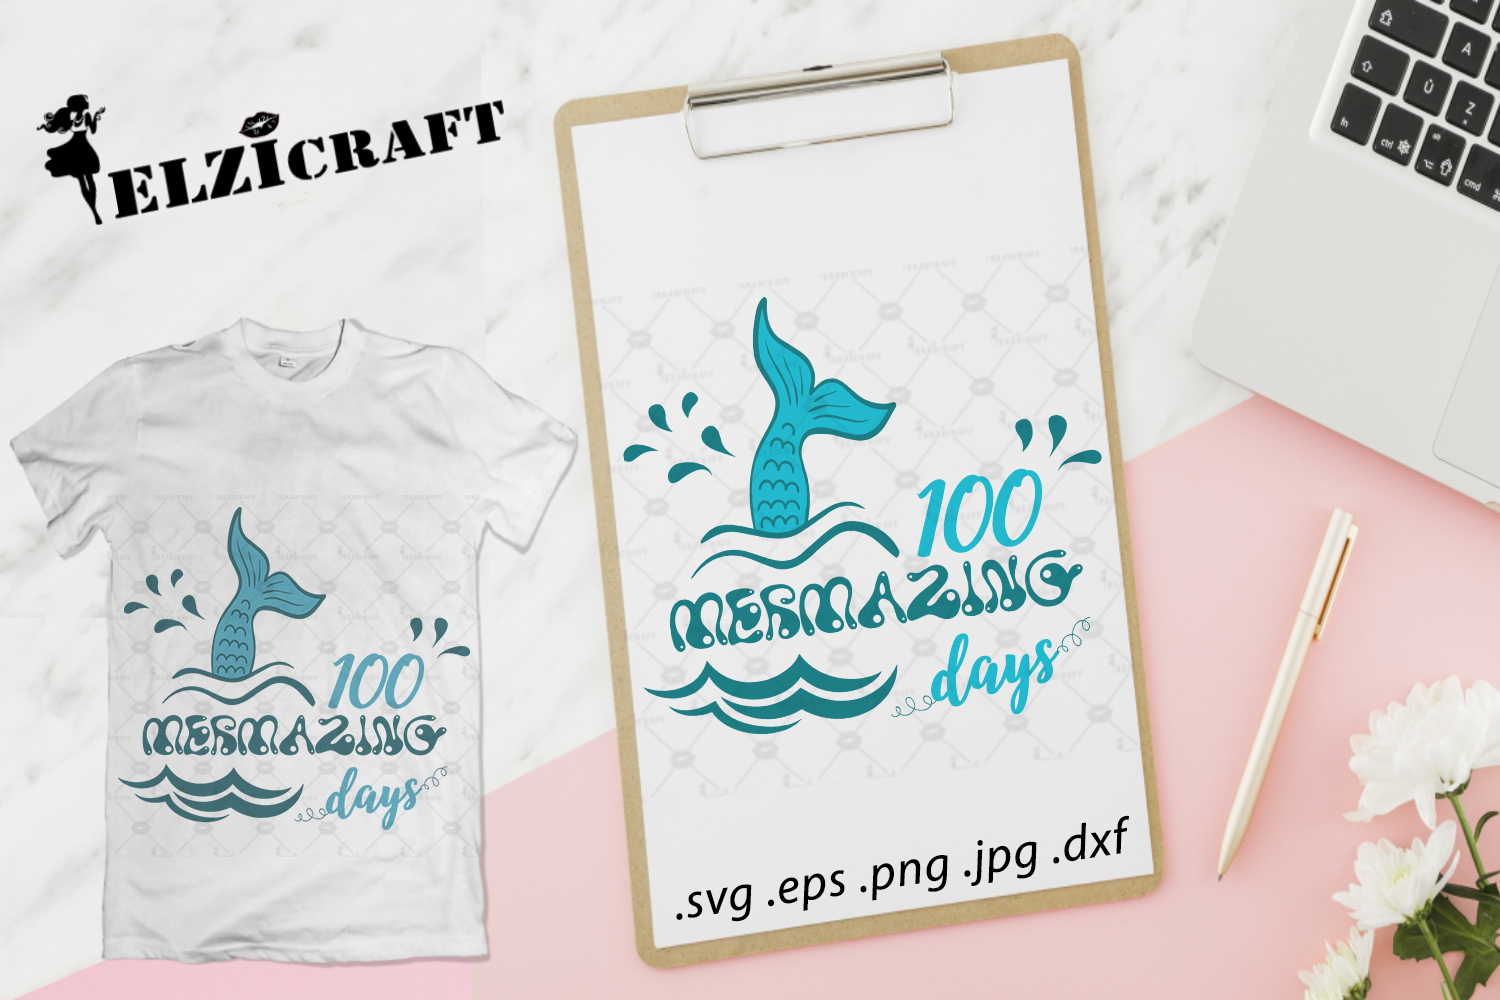 Download Free 100 Mermazing Days 100th Day Of School Graphic By Elzicraft for Cricut Explore, Silhouette and other cutting machines.